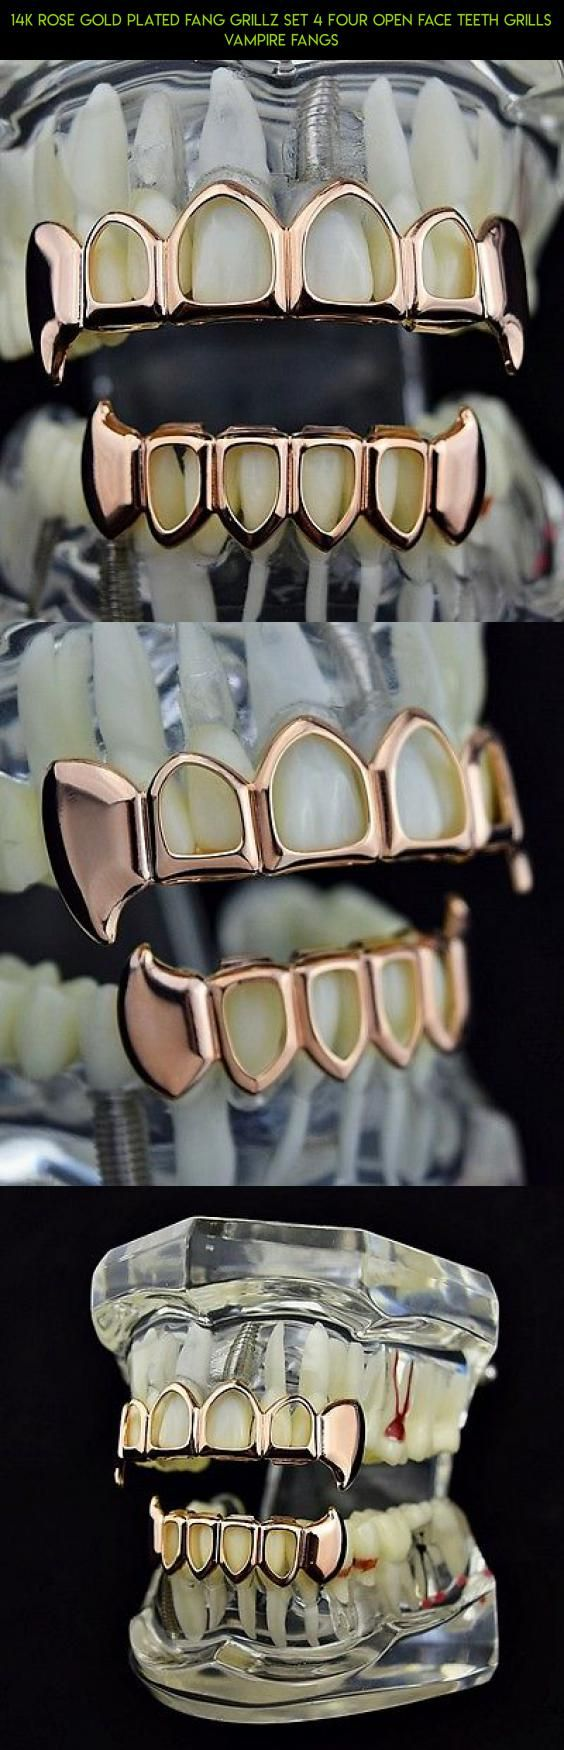 14k Rose Gold Plated Fang Grillz Set 4 Four Open Face Teeth Grills Vampire Fangs #fpv #camera #racing #rose #drone #technology #shopping #tech #kit #parts #gold #grills #products #gadgets #plans